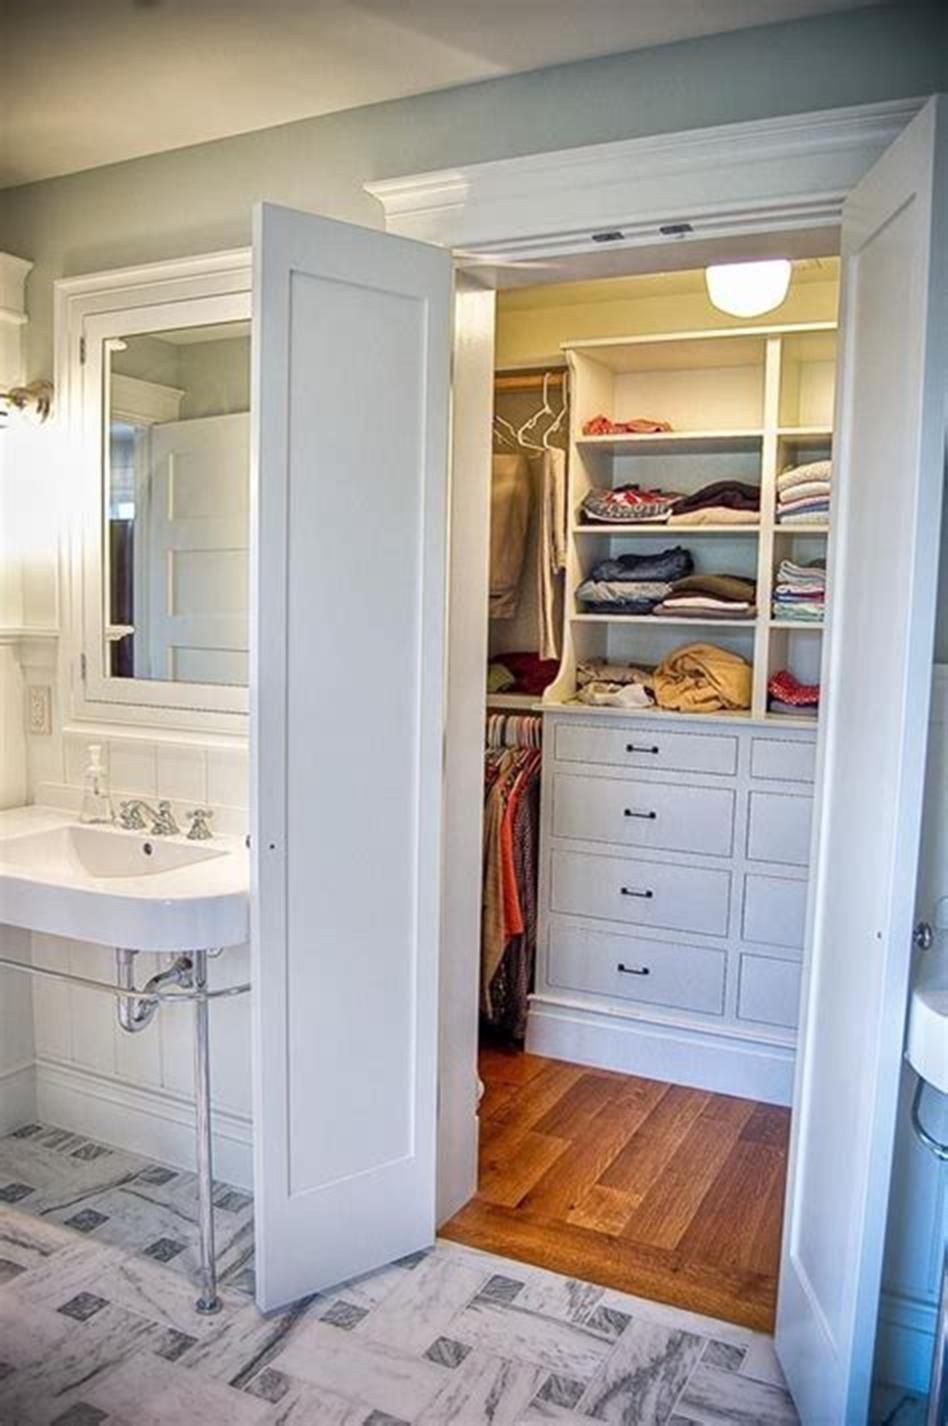 40+ Best Small Walk In Bedroom Closet Organization and Design Ideas for 2019 images